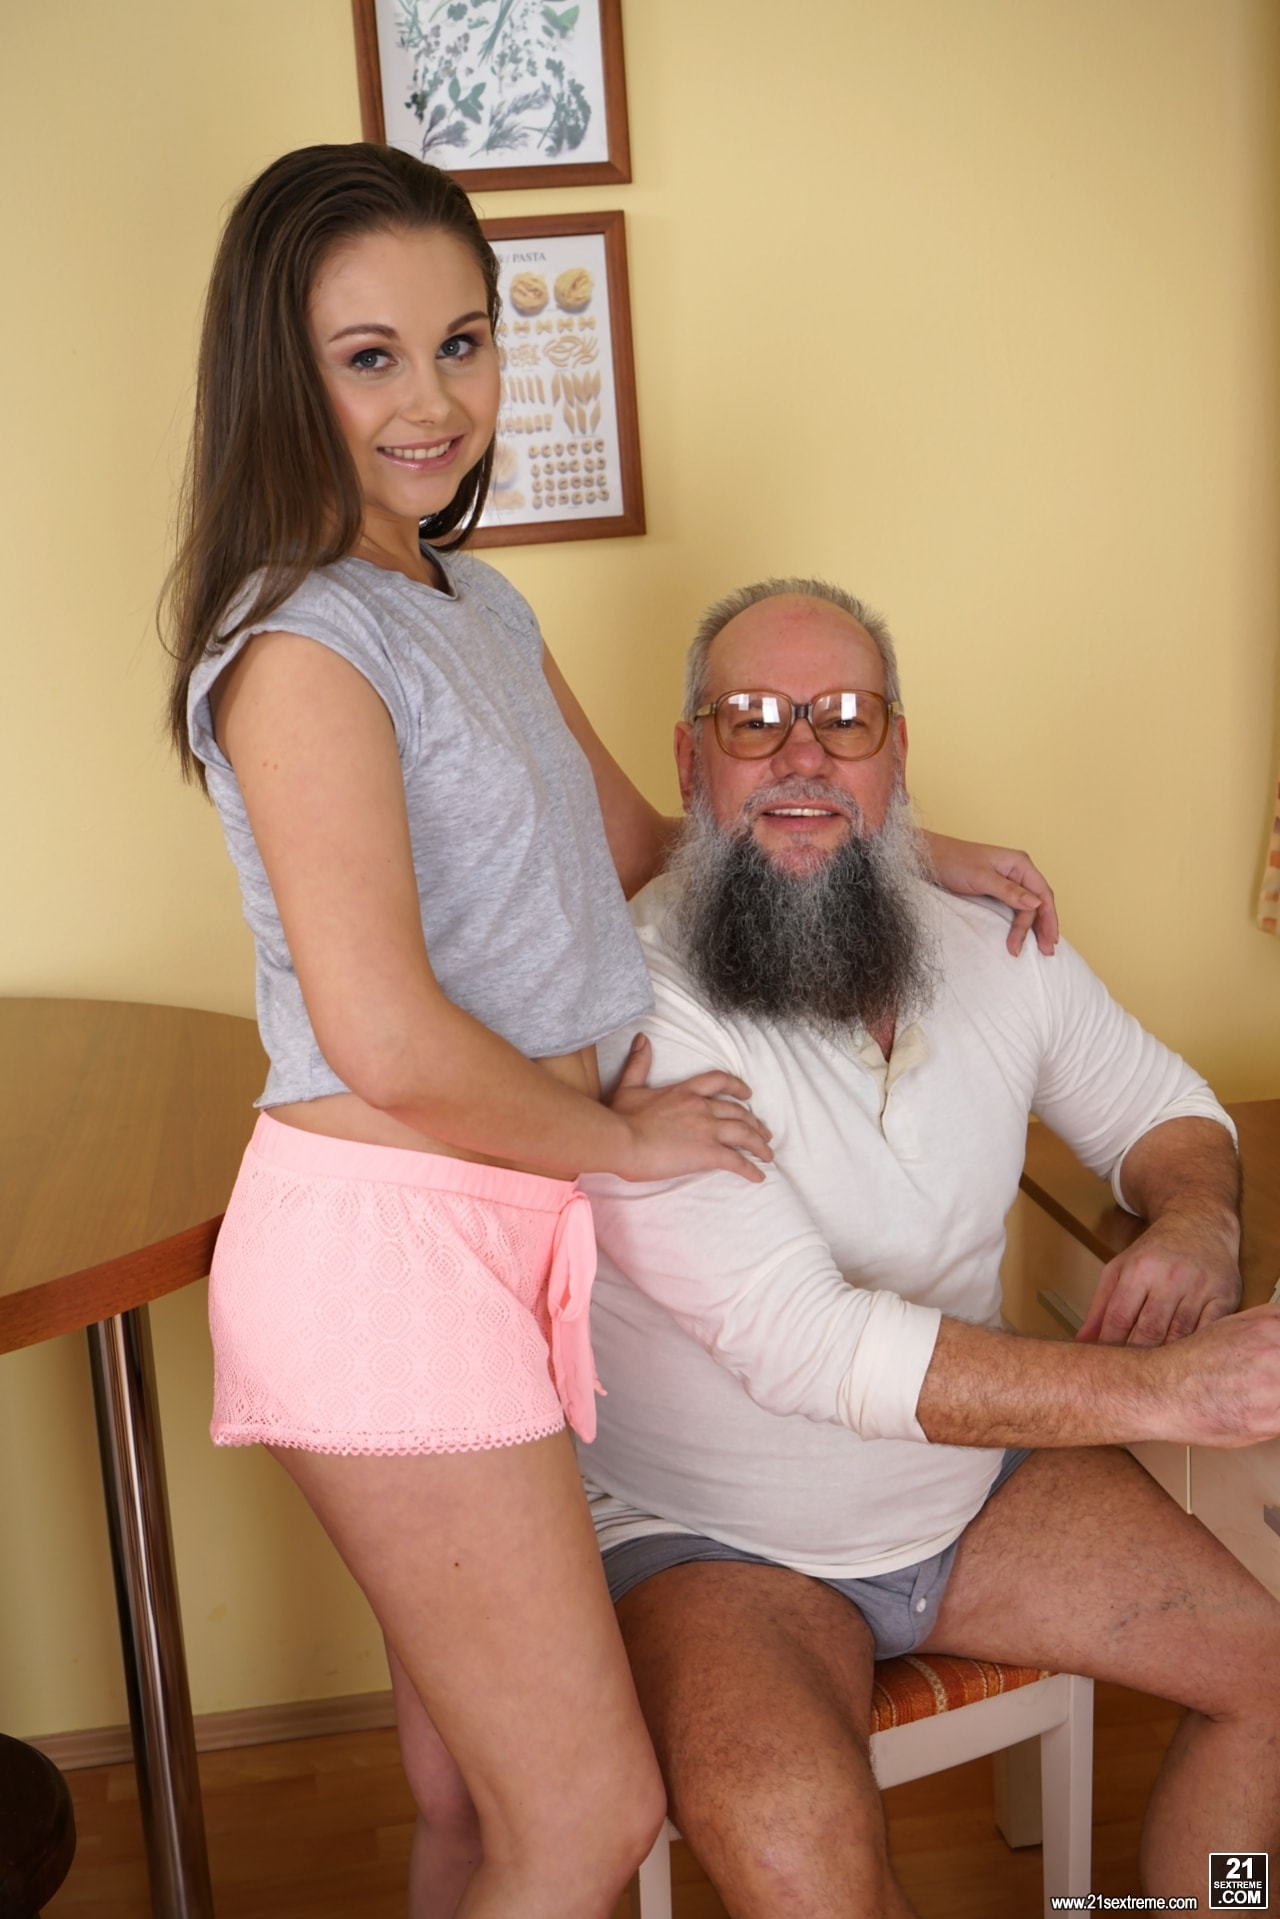 21Sextury 'Tasting A Young Woman' starring Liza Shay (Photo 1)